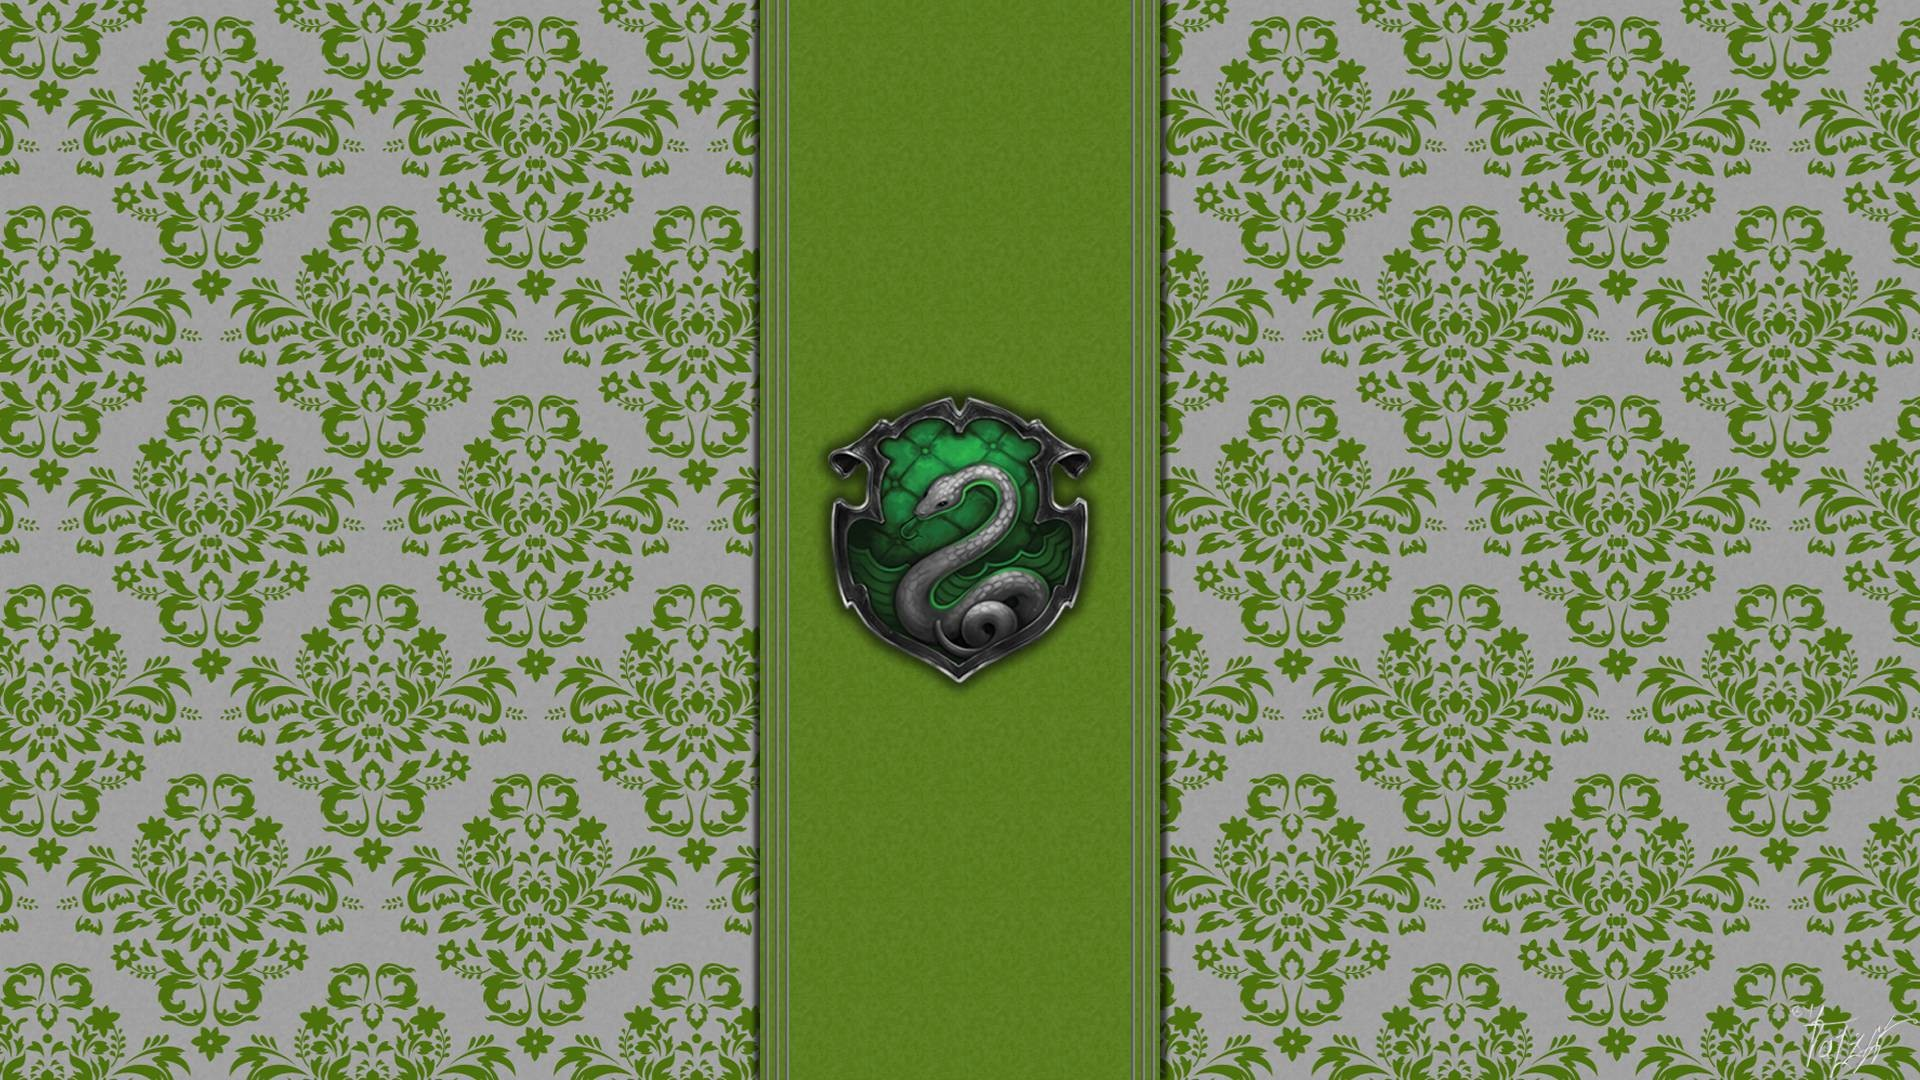 Res: 1920x1080, Wallpaper for all the Slytherins | Slytherin | Pinterest